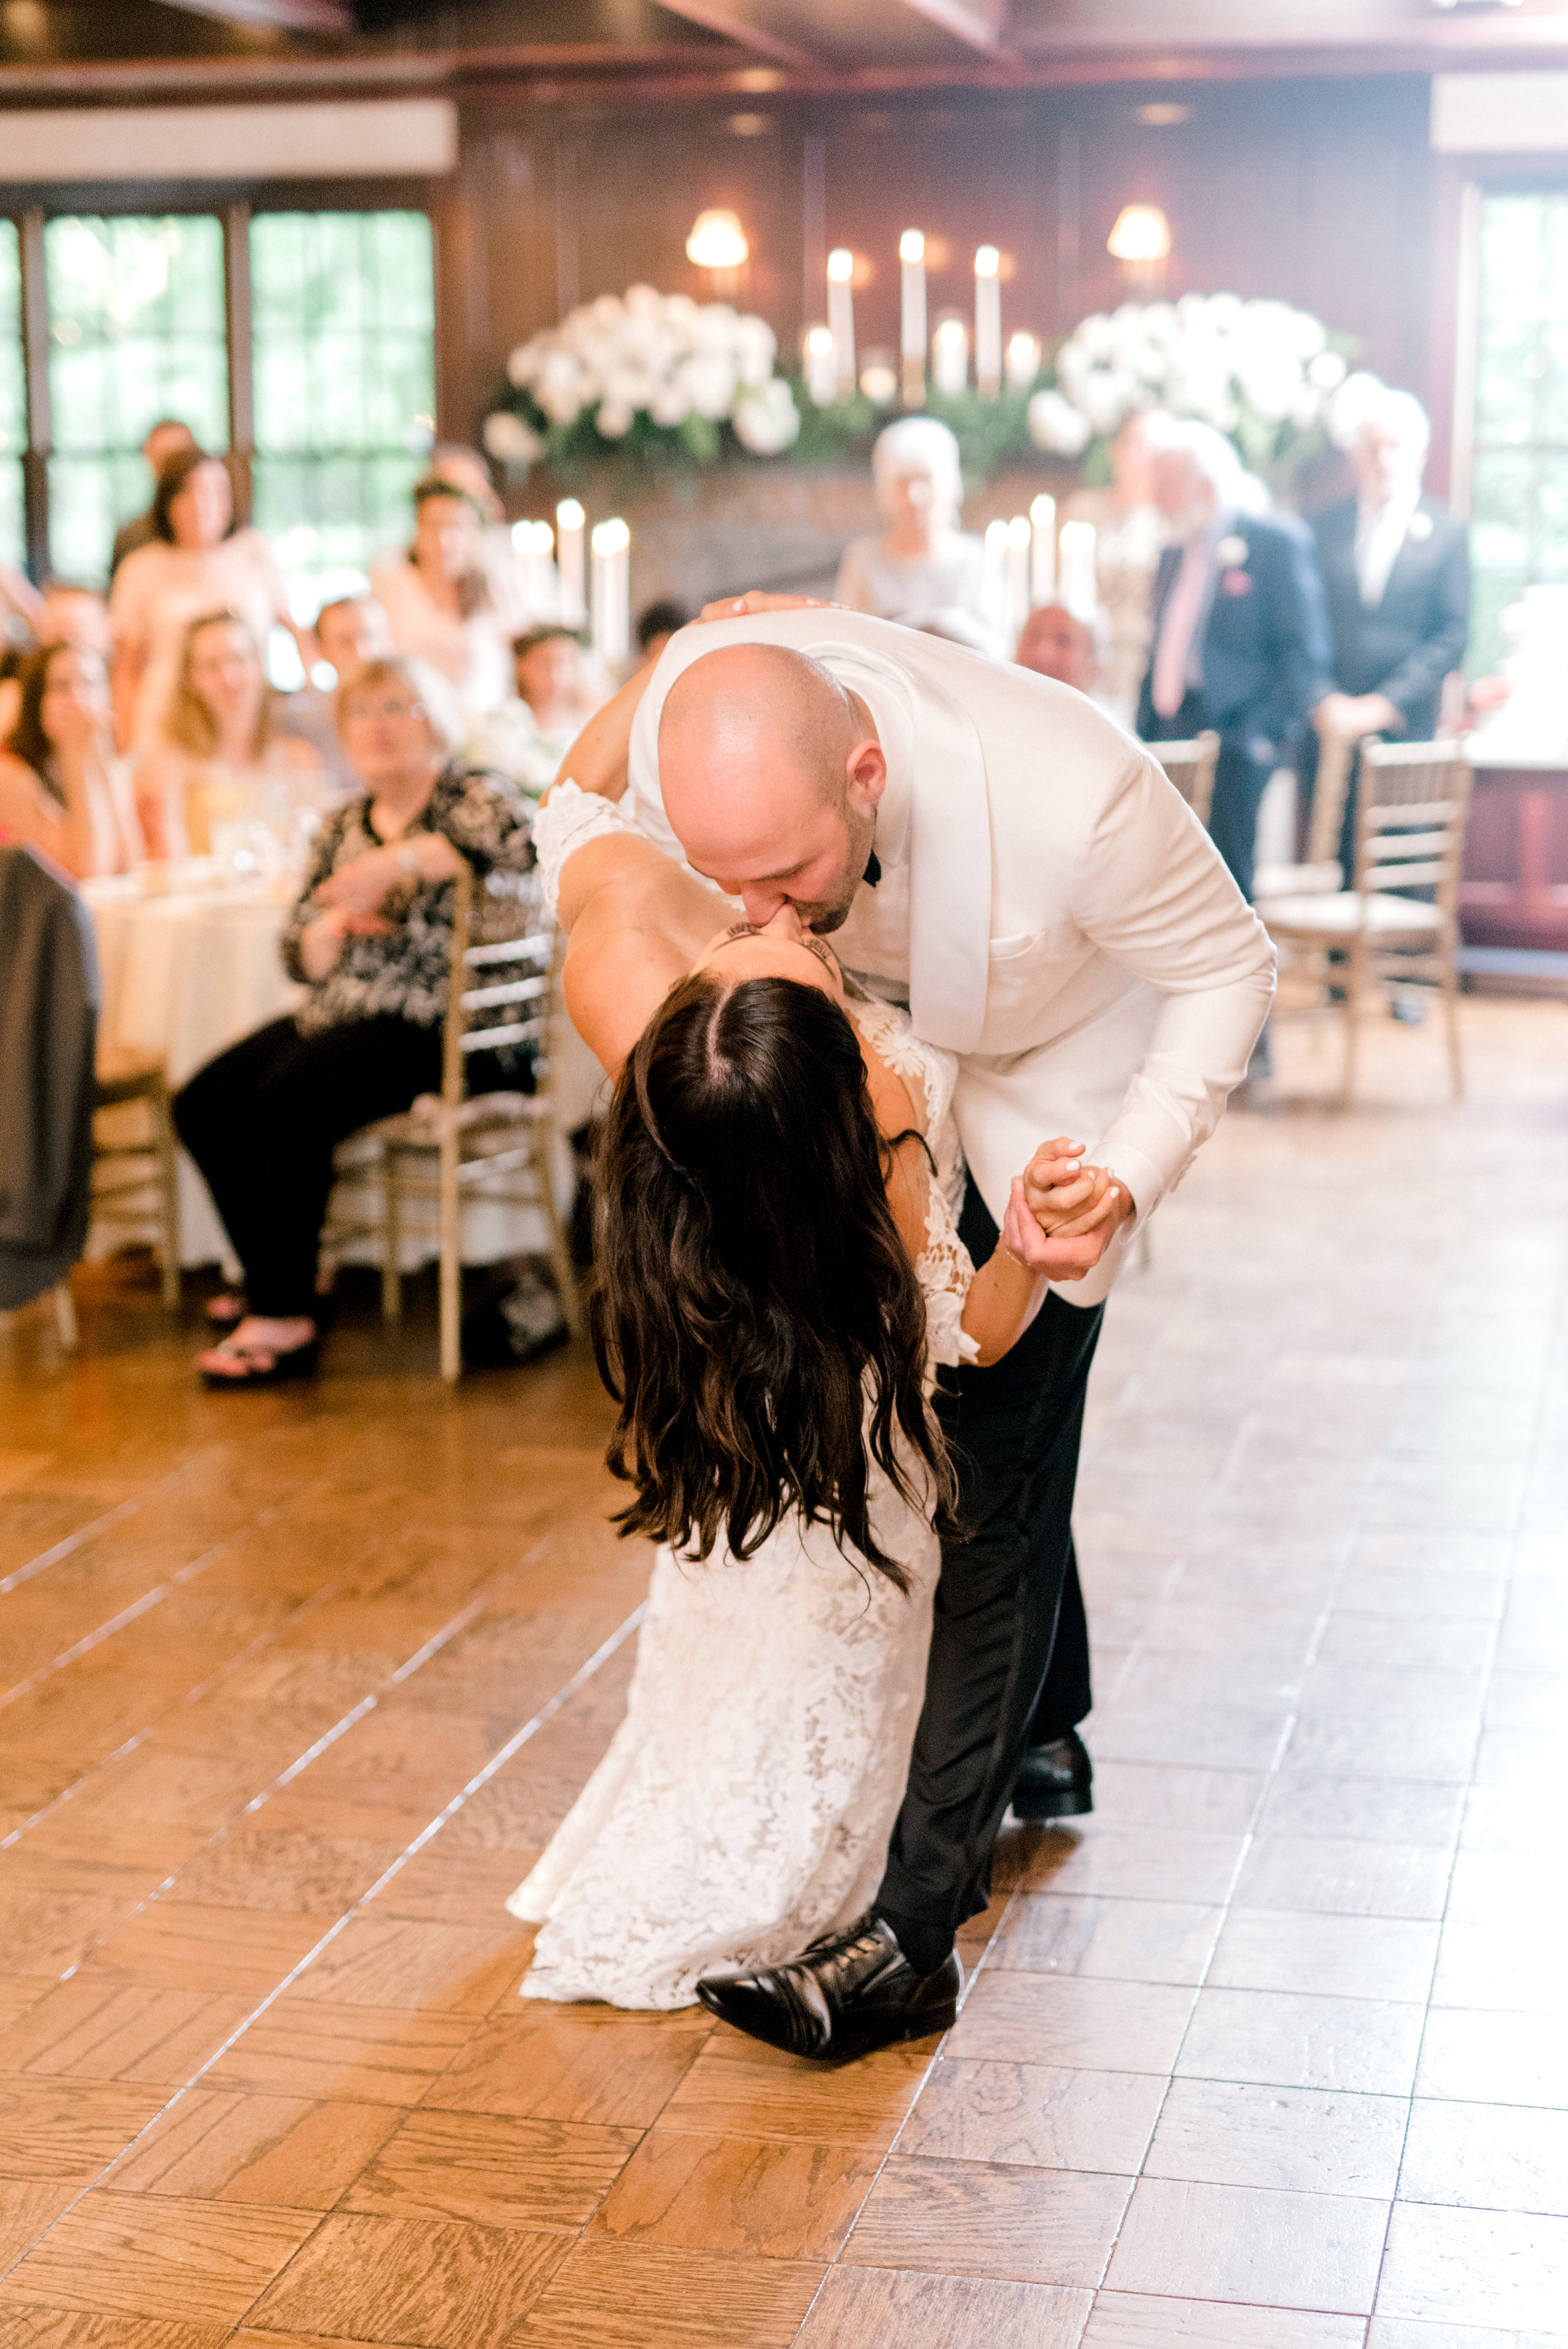 A dramatic dip for their first dance, this modern bright summer wedding at Hotel du Village had so much elegance and we're swooning.